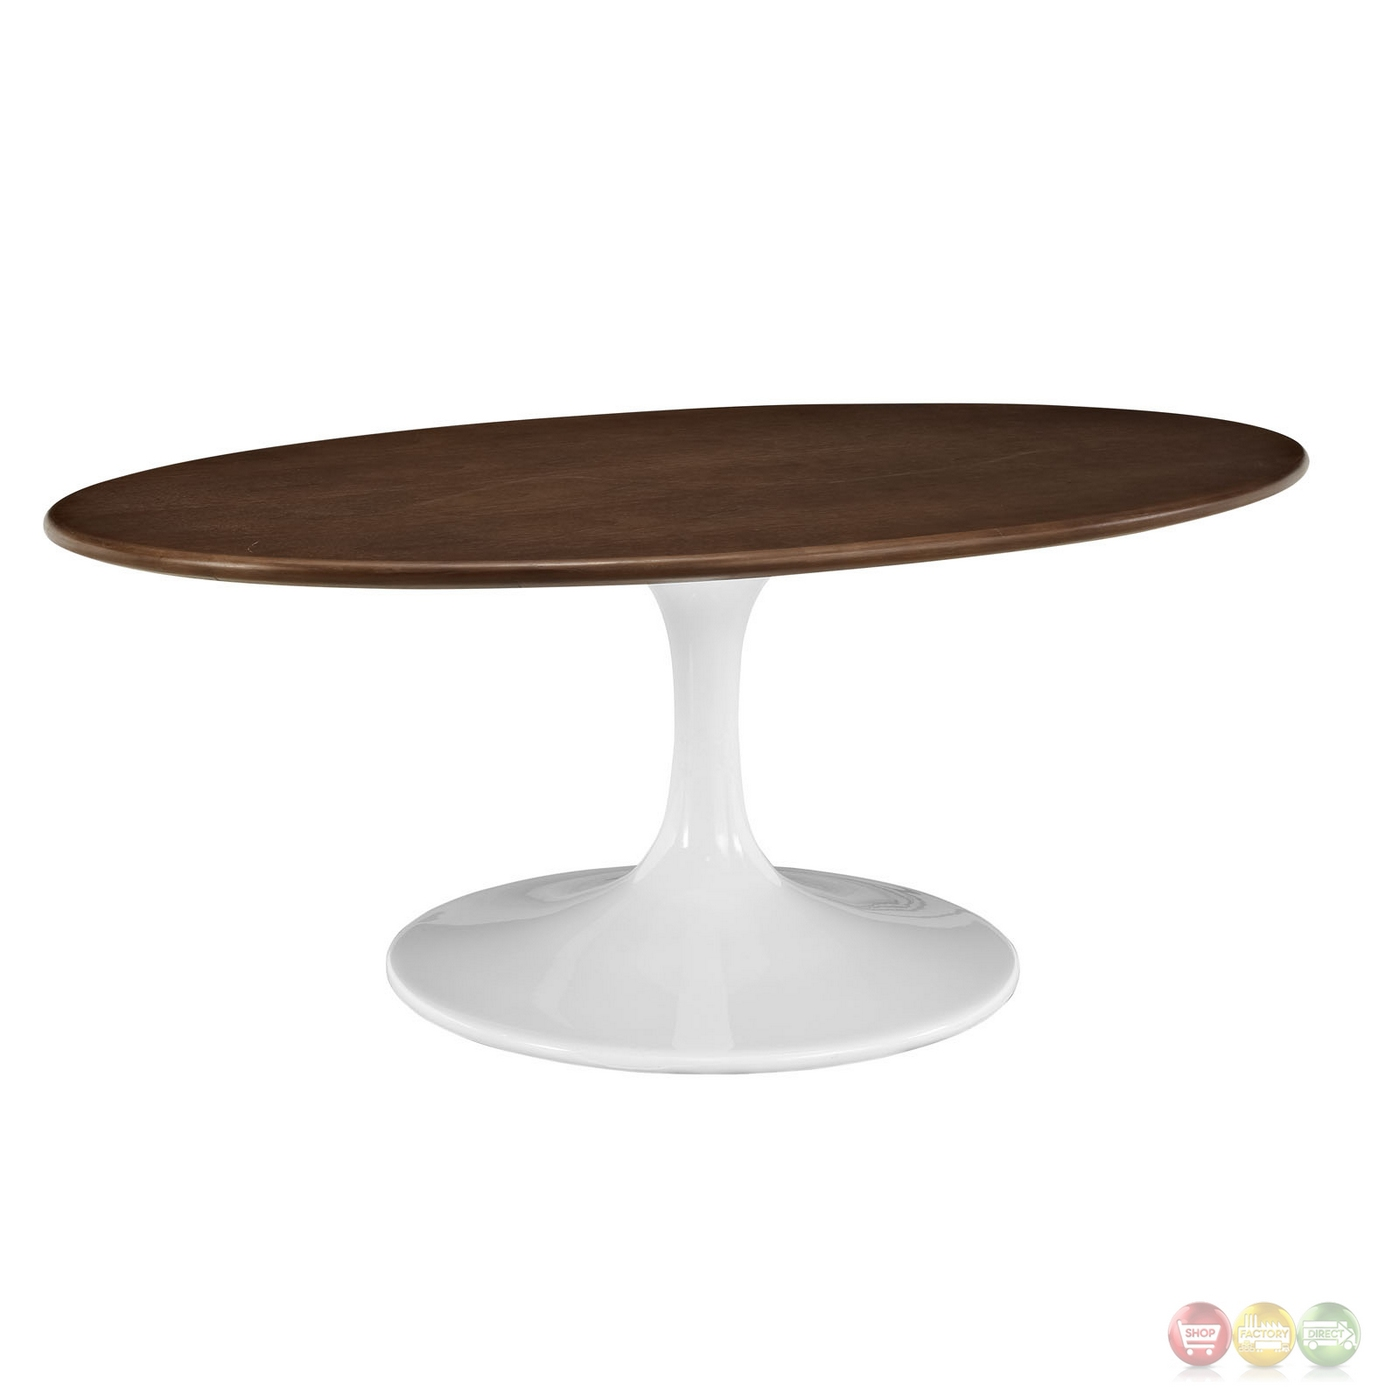 Lippa 42 walnut top coffee table with lacquered finish walnut veneer Oval shaped coffee table